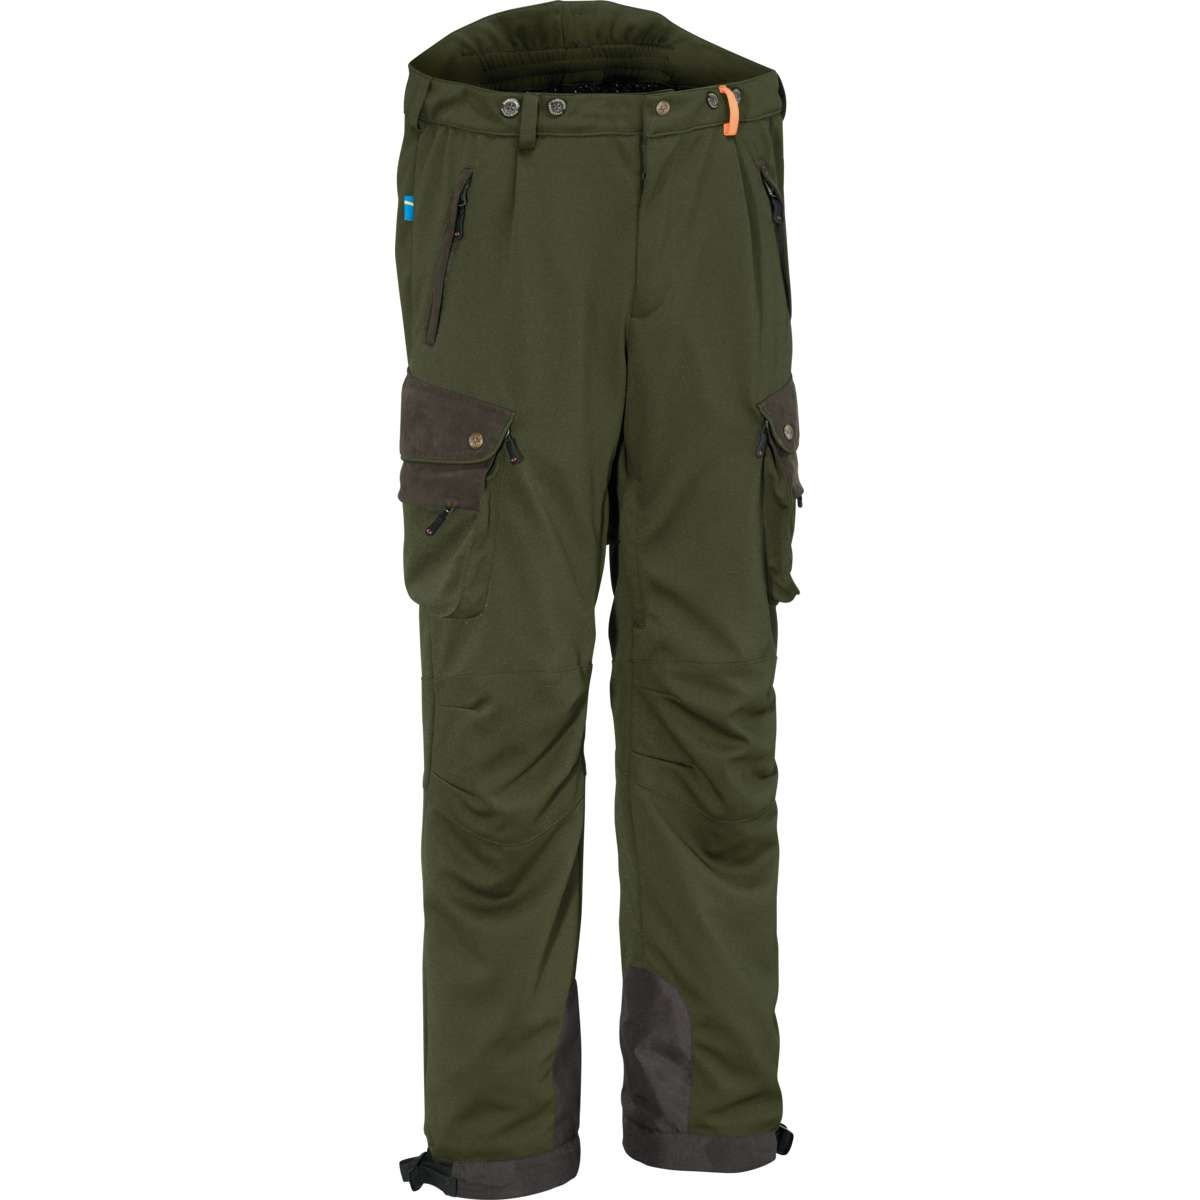 Swedteam Crest Thermo Classic M broek